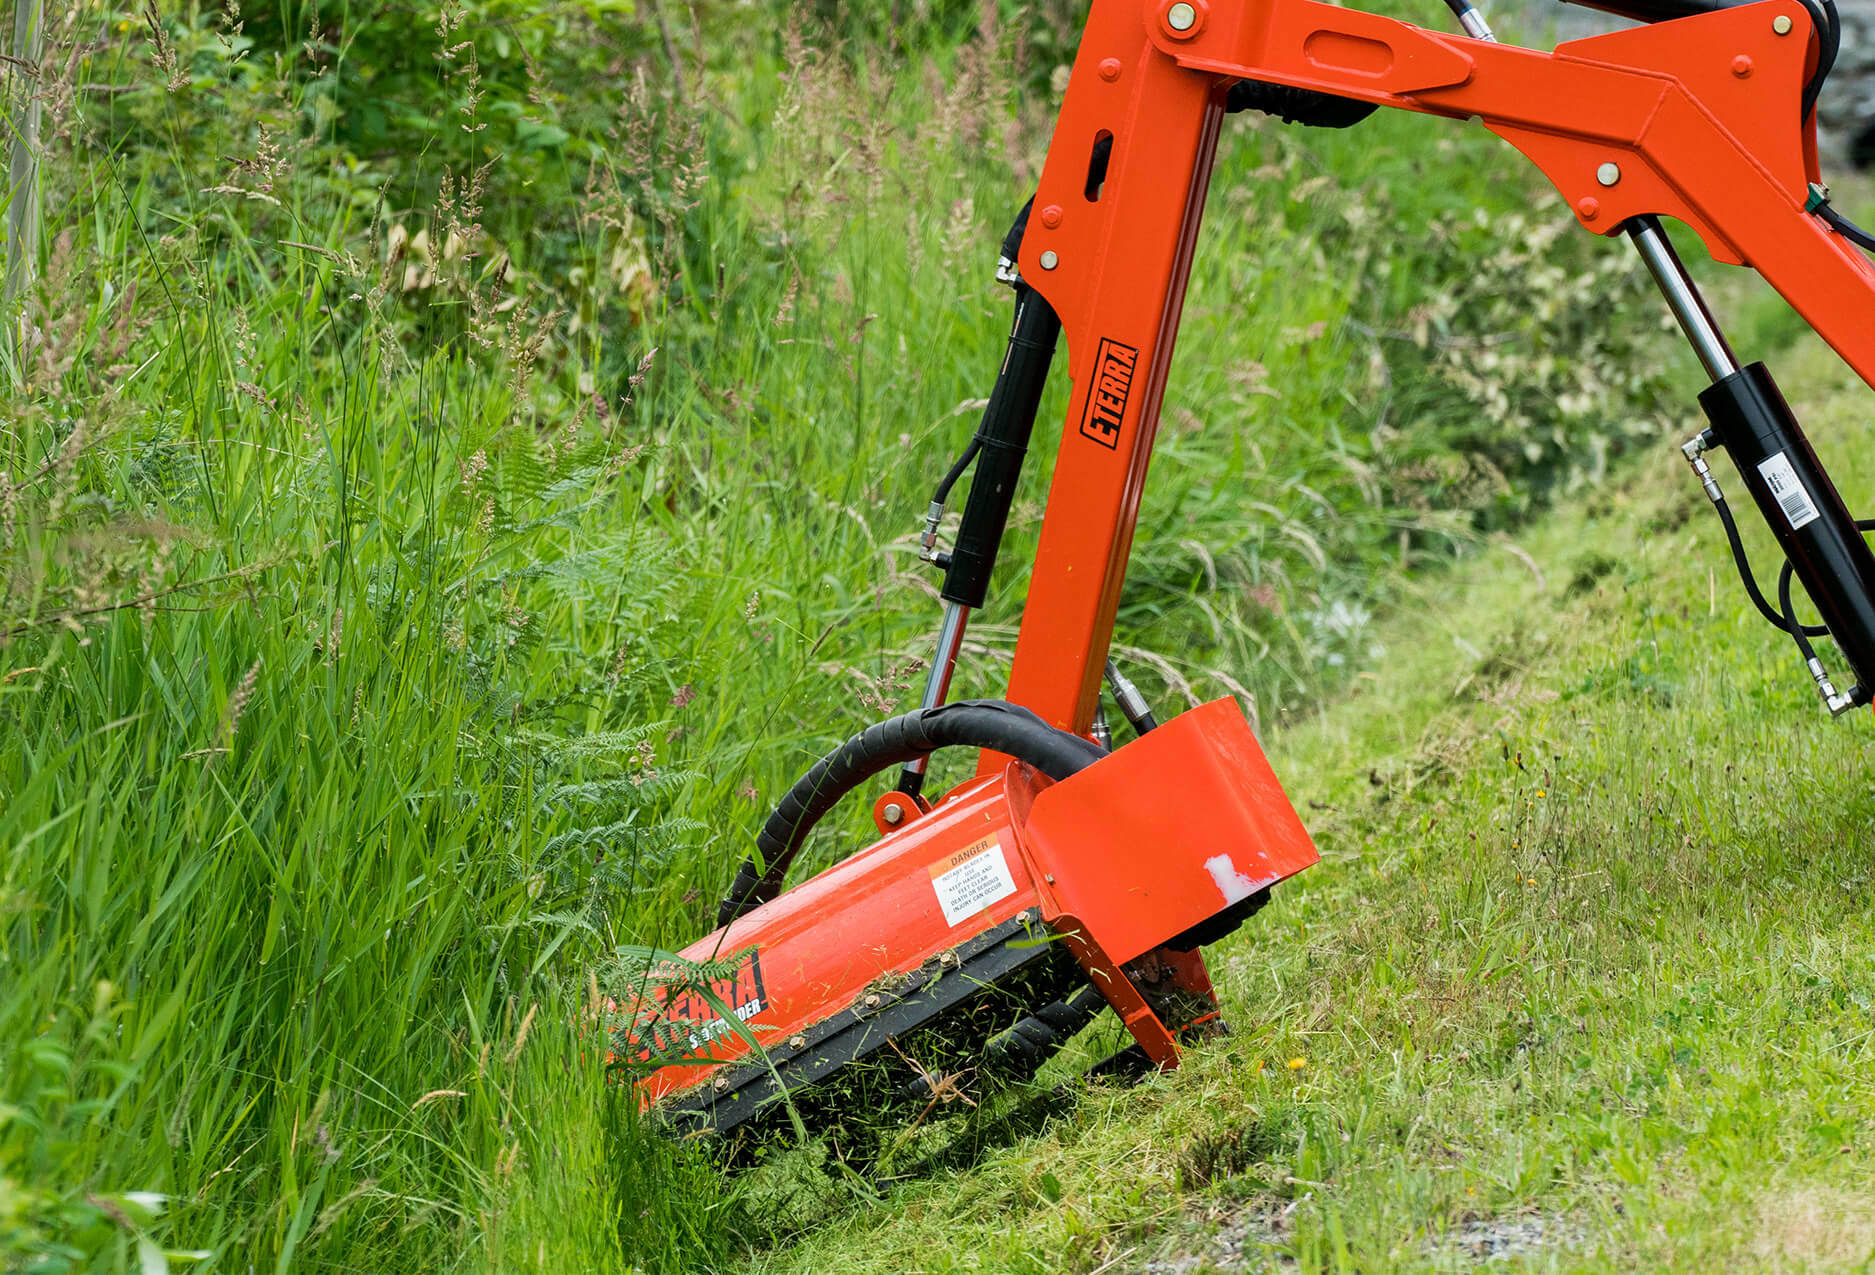 Eterra Sidewinder Skid Steer flail mower on Raptor boom arm mowing ditch closeup